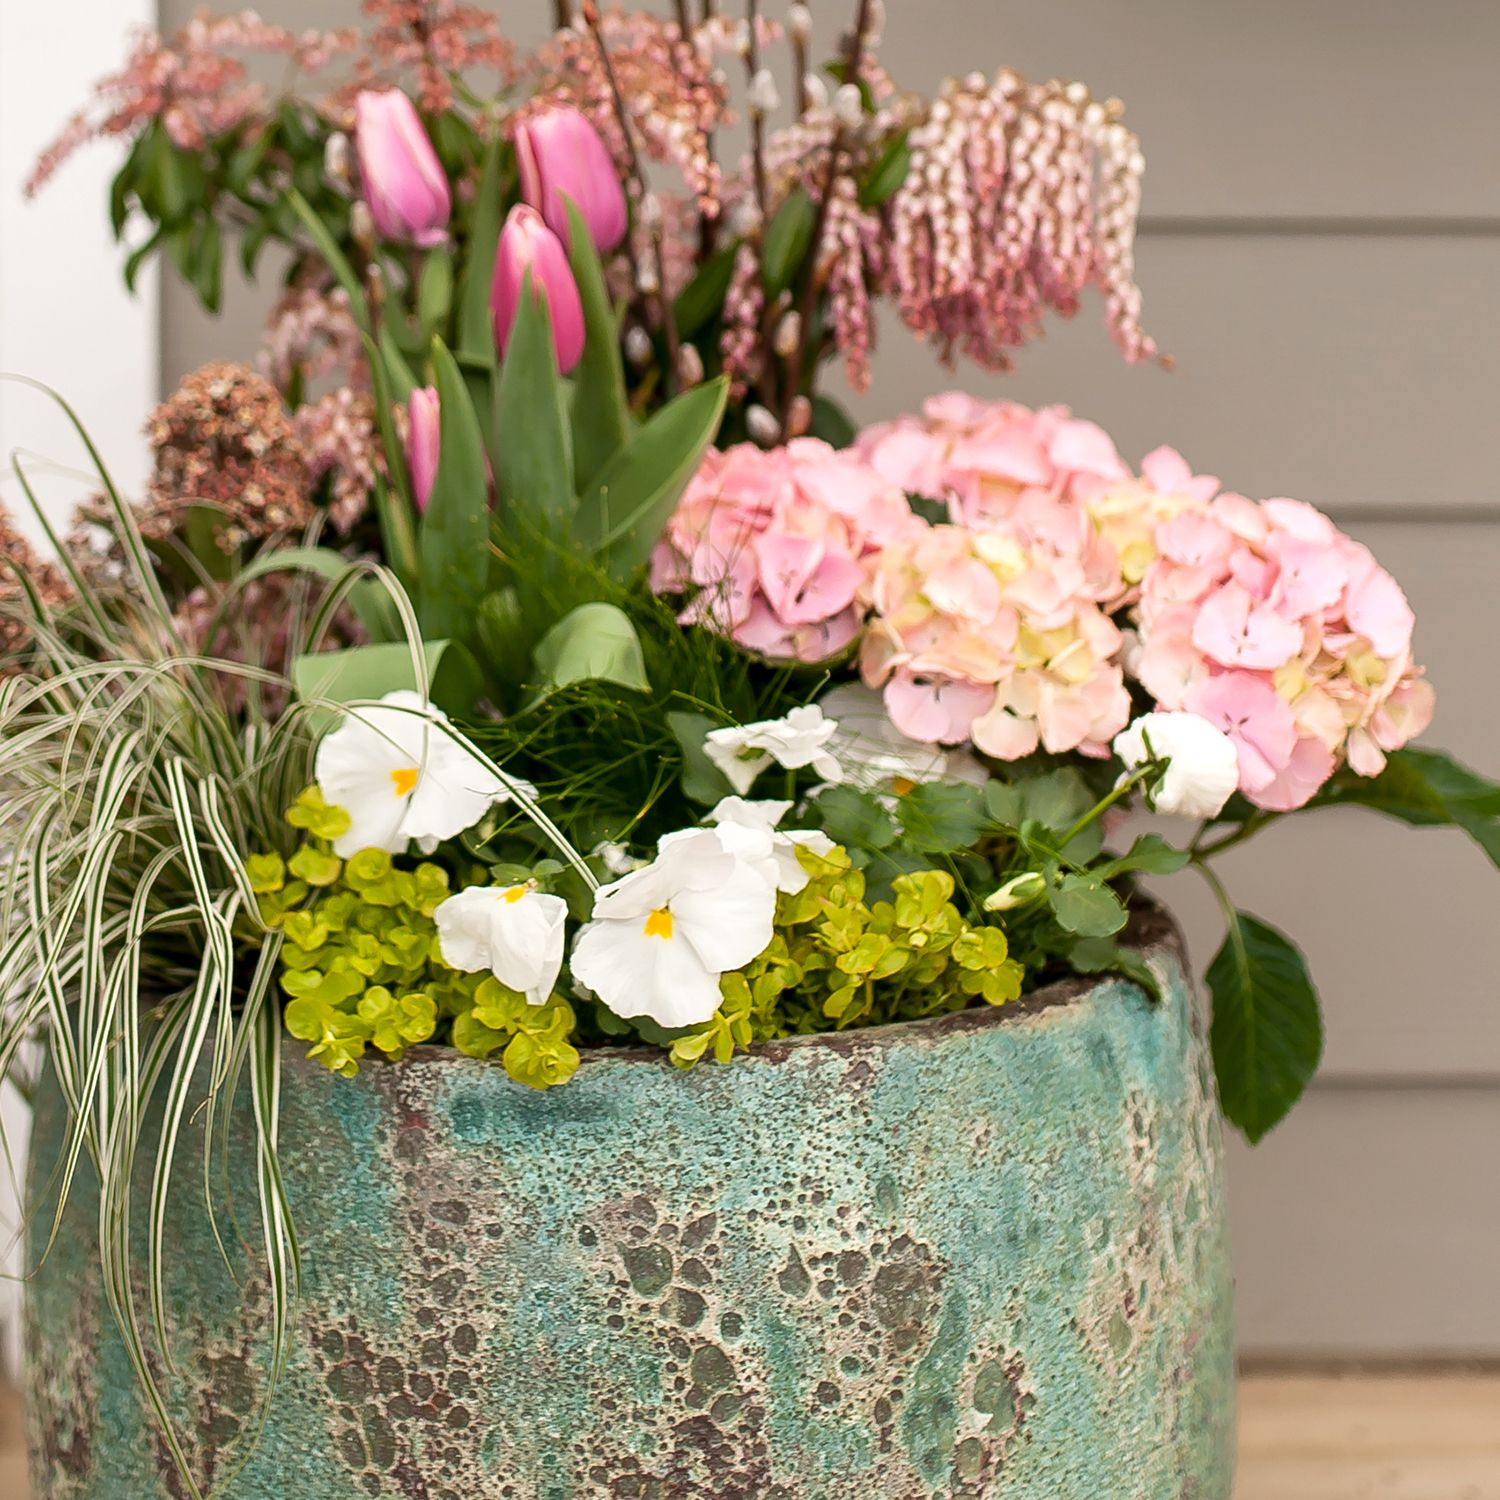 Jason's Guide to Container Gardens When to plant